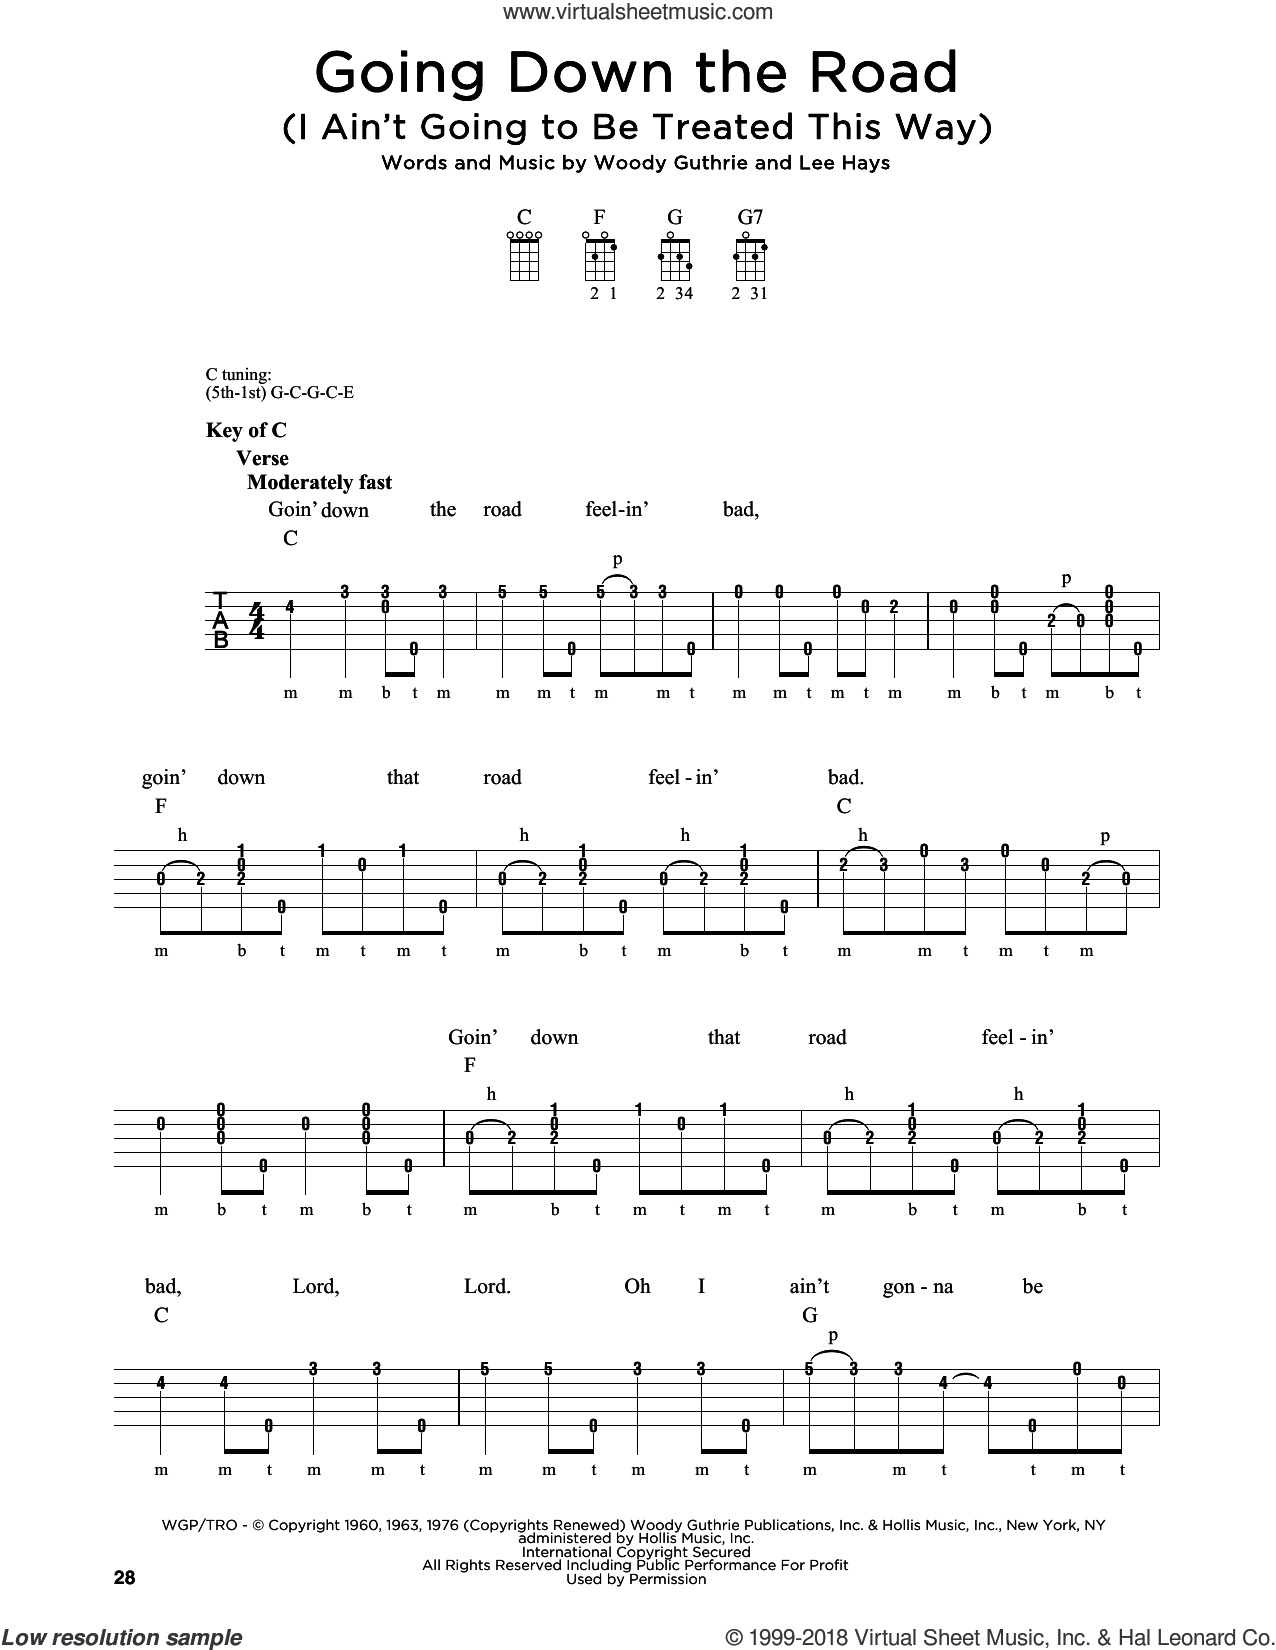 Going Down The Road (I Ain't Going To Be Treated This Way) sheet music for banjo solo by Woody Guthrie, Greg Cahill, Michael J. Miles and Lee Hays, intermediate skill level